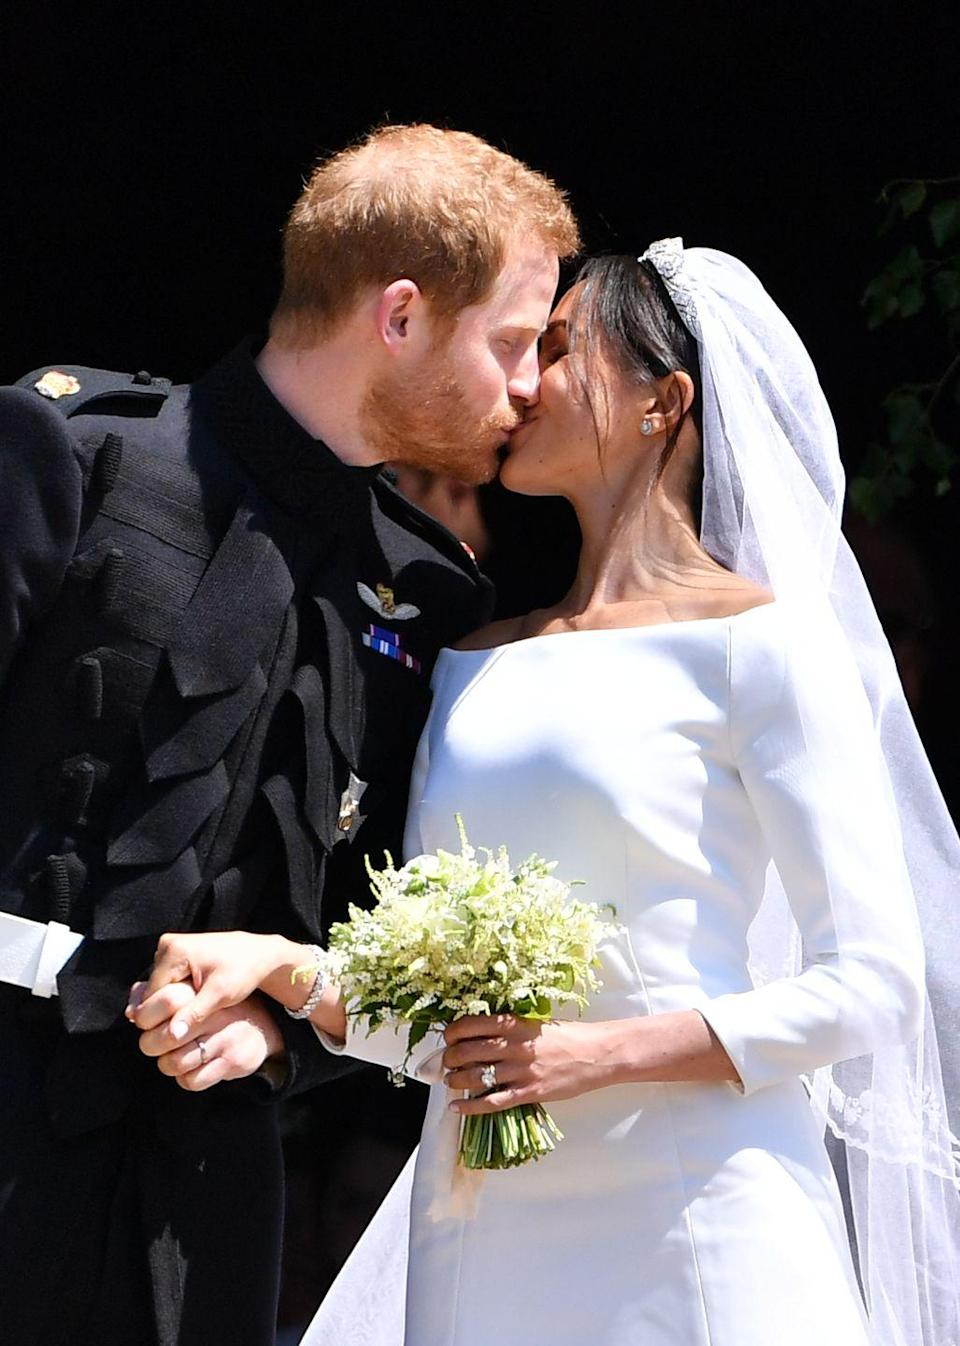 "<p>Another royal wedding, and this time it was bigger than the last. Following suit of what seems to be a family tradition, Prince Harry and Meghan Markle spent about $40.1 million alone on security for their wedding. In total, the special day <a href=""https://www.cnbc.com/2018/05/18/the-royal-wedding-may-cost-43-million-and-94-percent-of-that-is-for-security.html#:~:text=The%20Wedding%20Economy-,The%20royal%20wedding%20costs%20an%20estimated%20%2442.8%20million%E2%80%94and%2094,of%20it%20is%20for%20security&text=Meghan%20Markle%20and%20Prince%20Harry's,staggering%20bill%3A%20about%20%2442.8%20million."" rel=""nofollow noopener"" target=""_blank"" data-ylk=""slk:cost around"" class=""link rapid-noclick-resp"">cost around</a> $42.8 million. </p>"